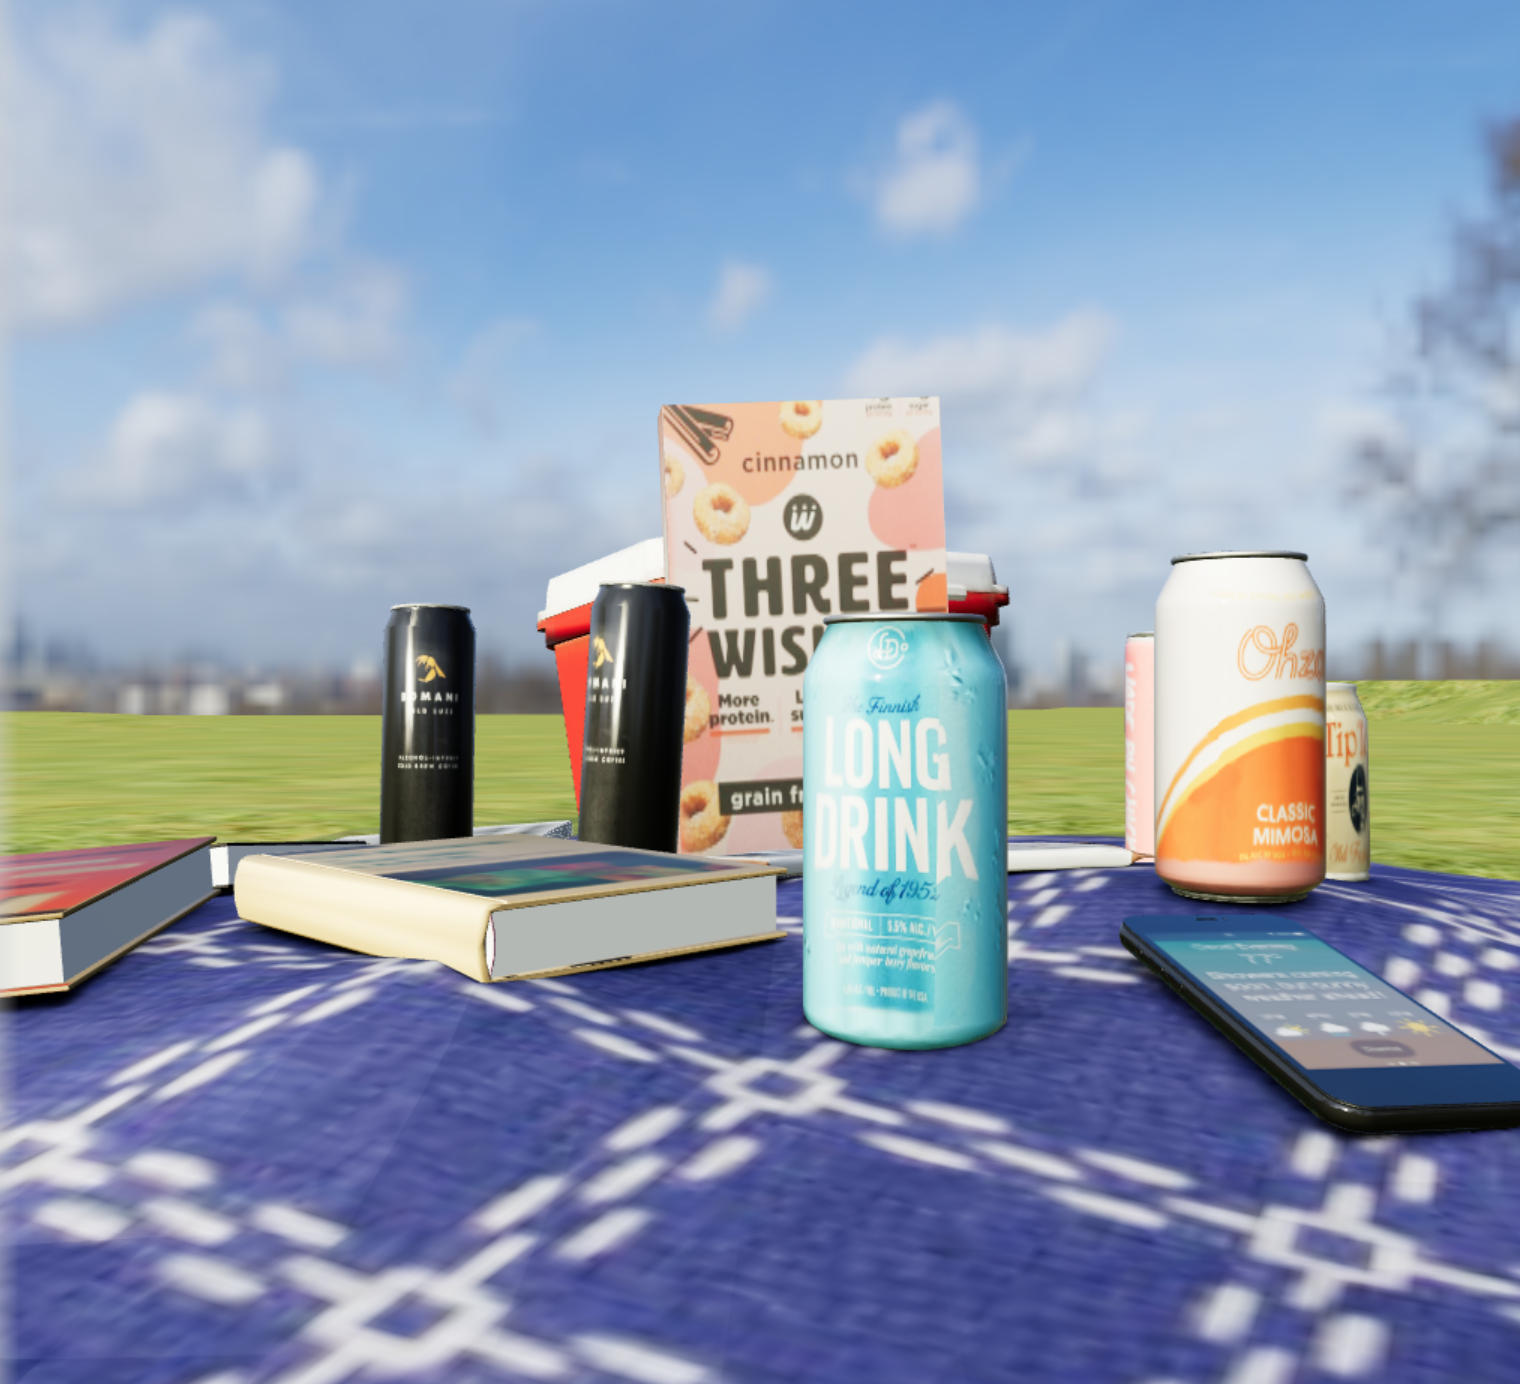 A 3D rendering of a picnic